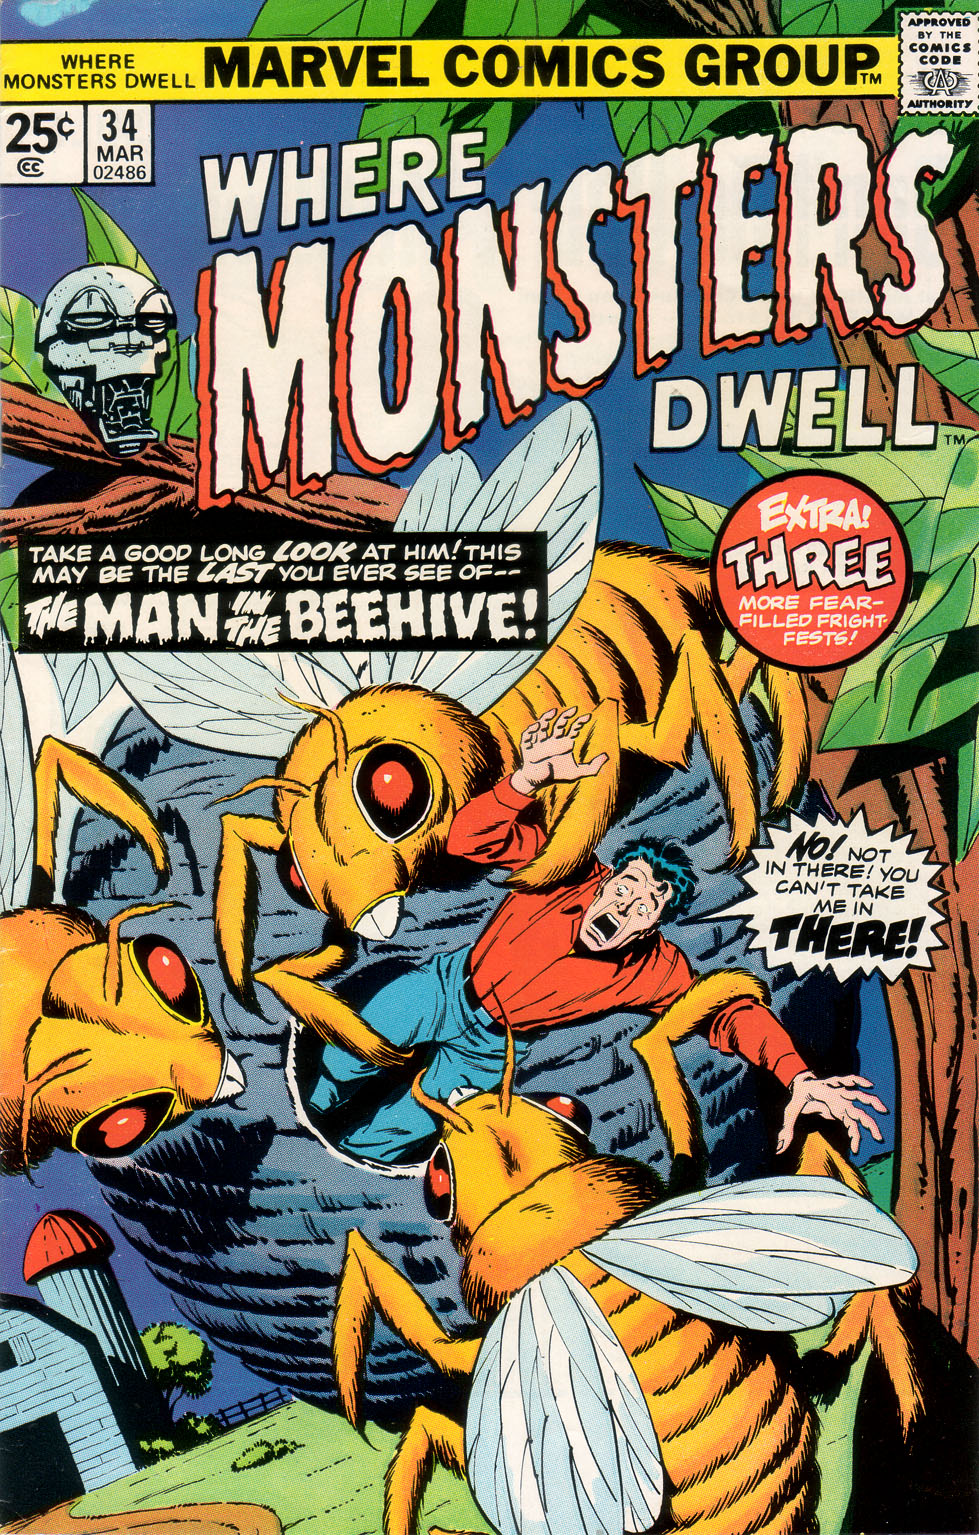 Where Monsters Dwell (1970) #34, cover by Sal Buscema.